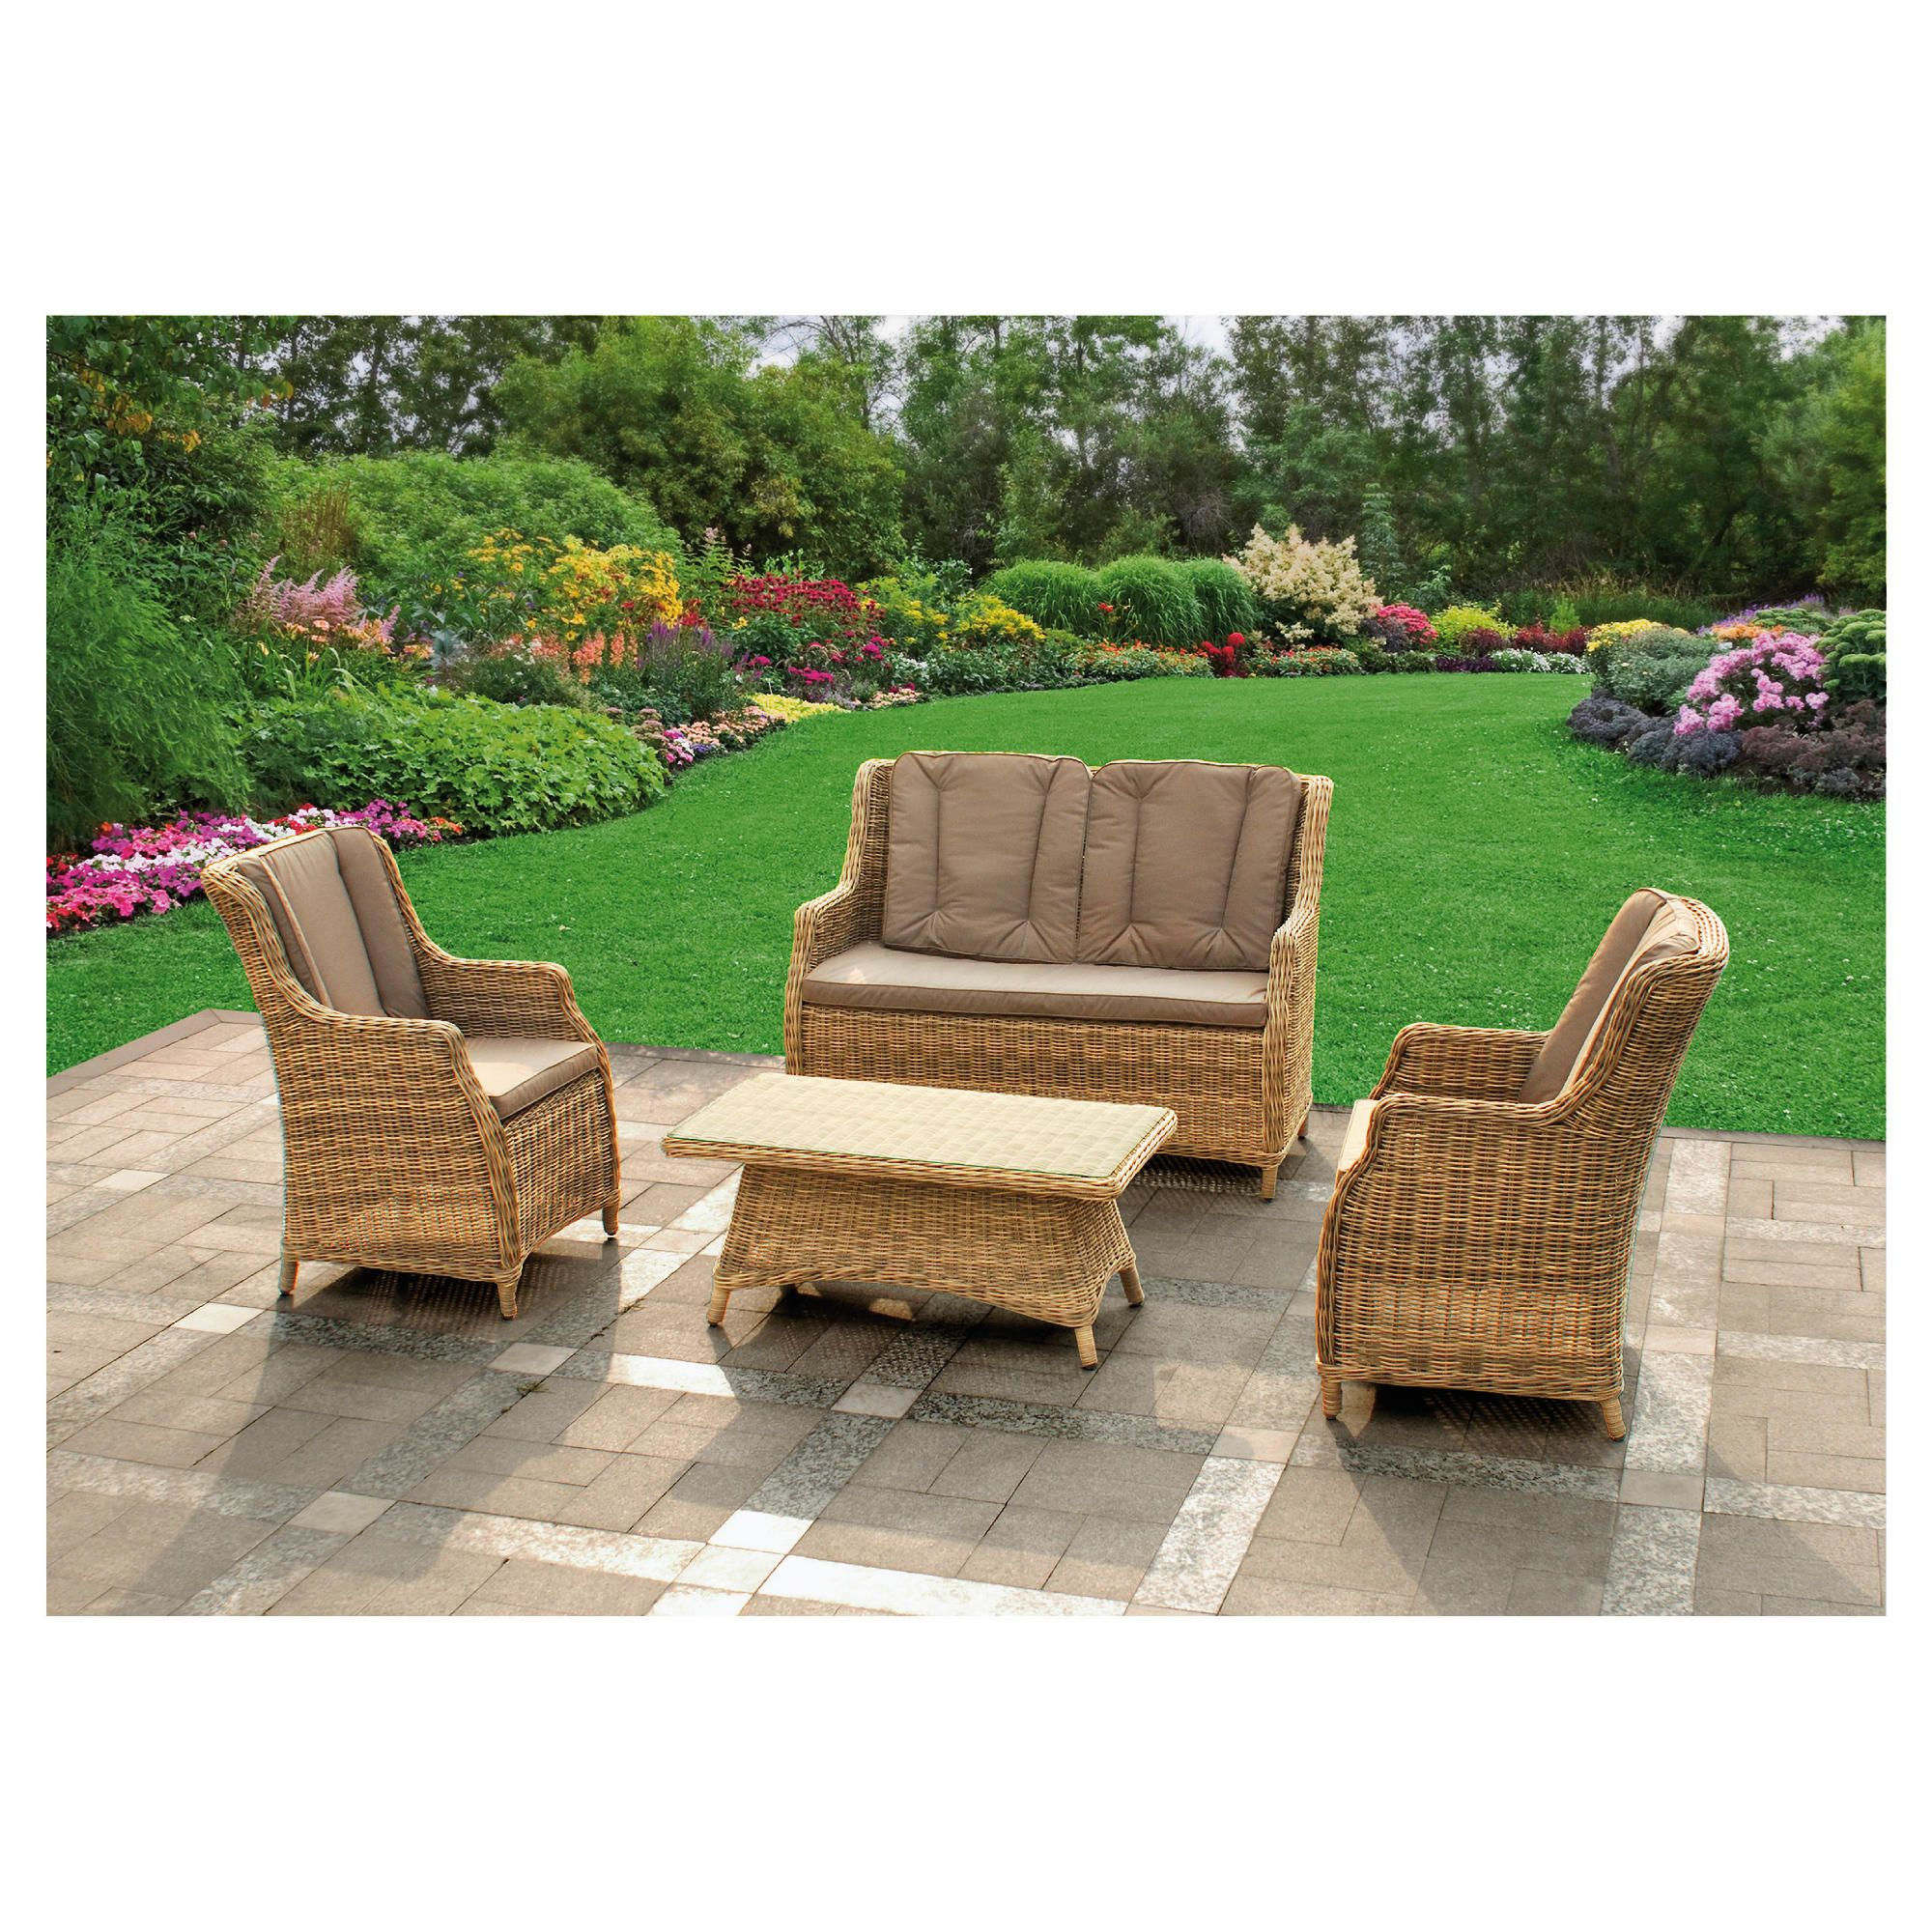 Royalcraft Verona lounge set at Tesco Direct